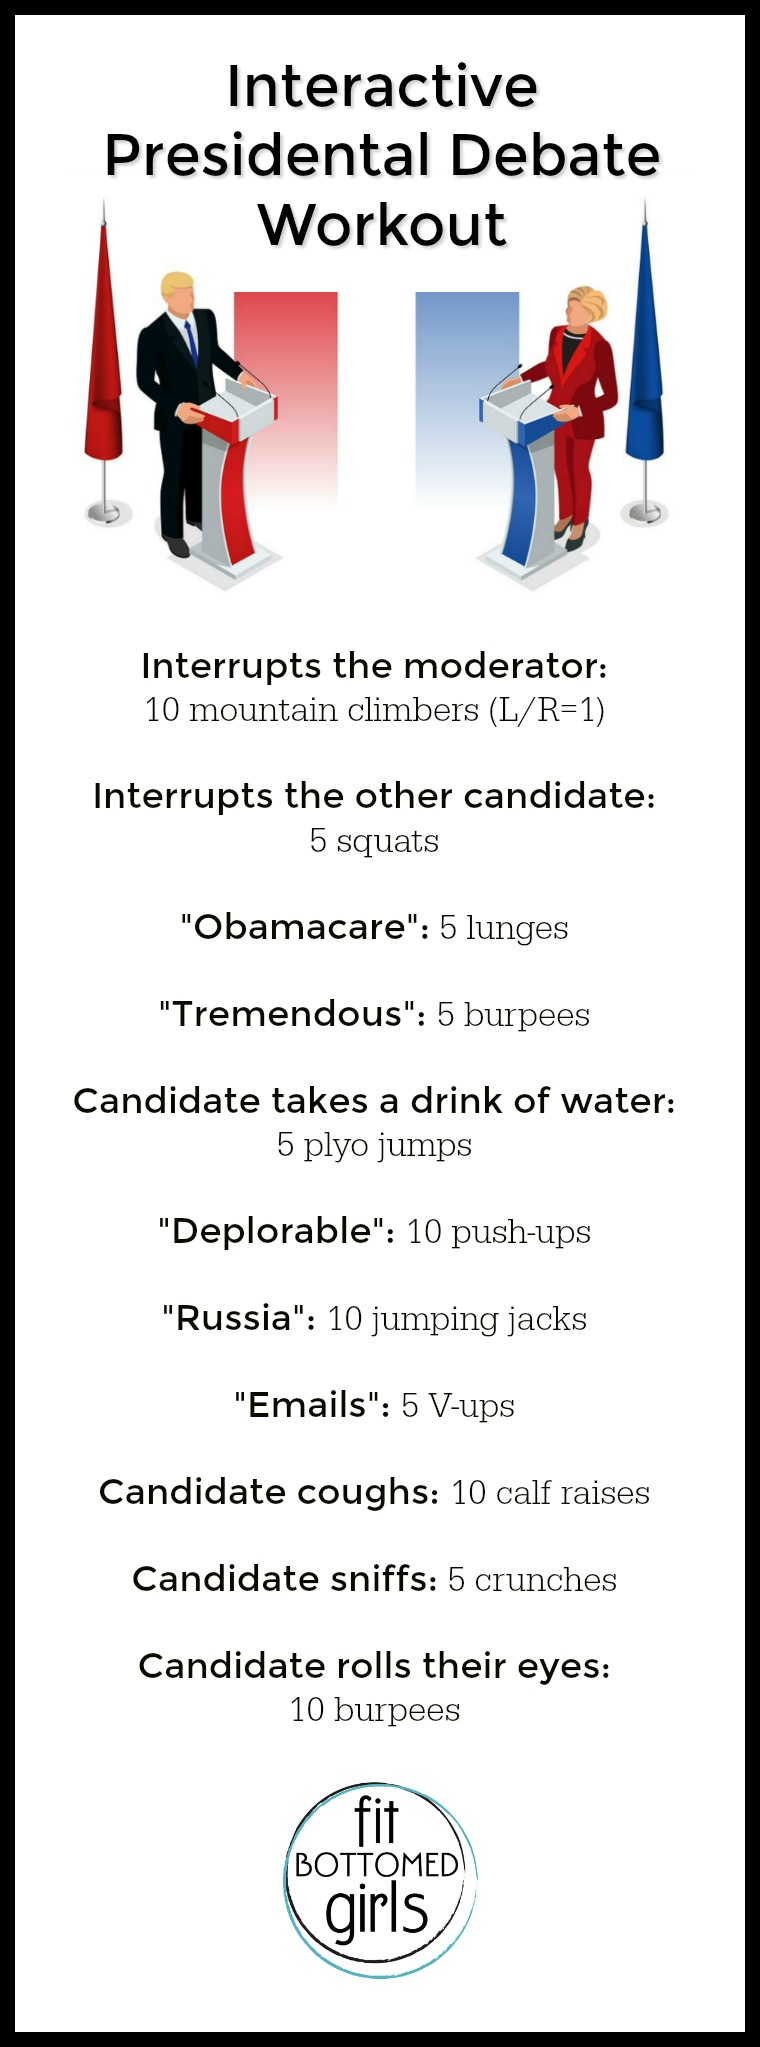 debate workout